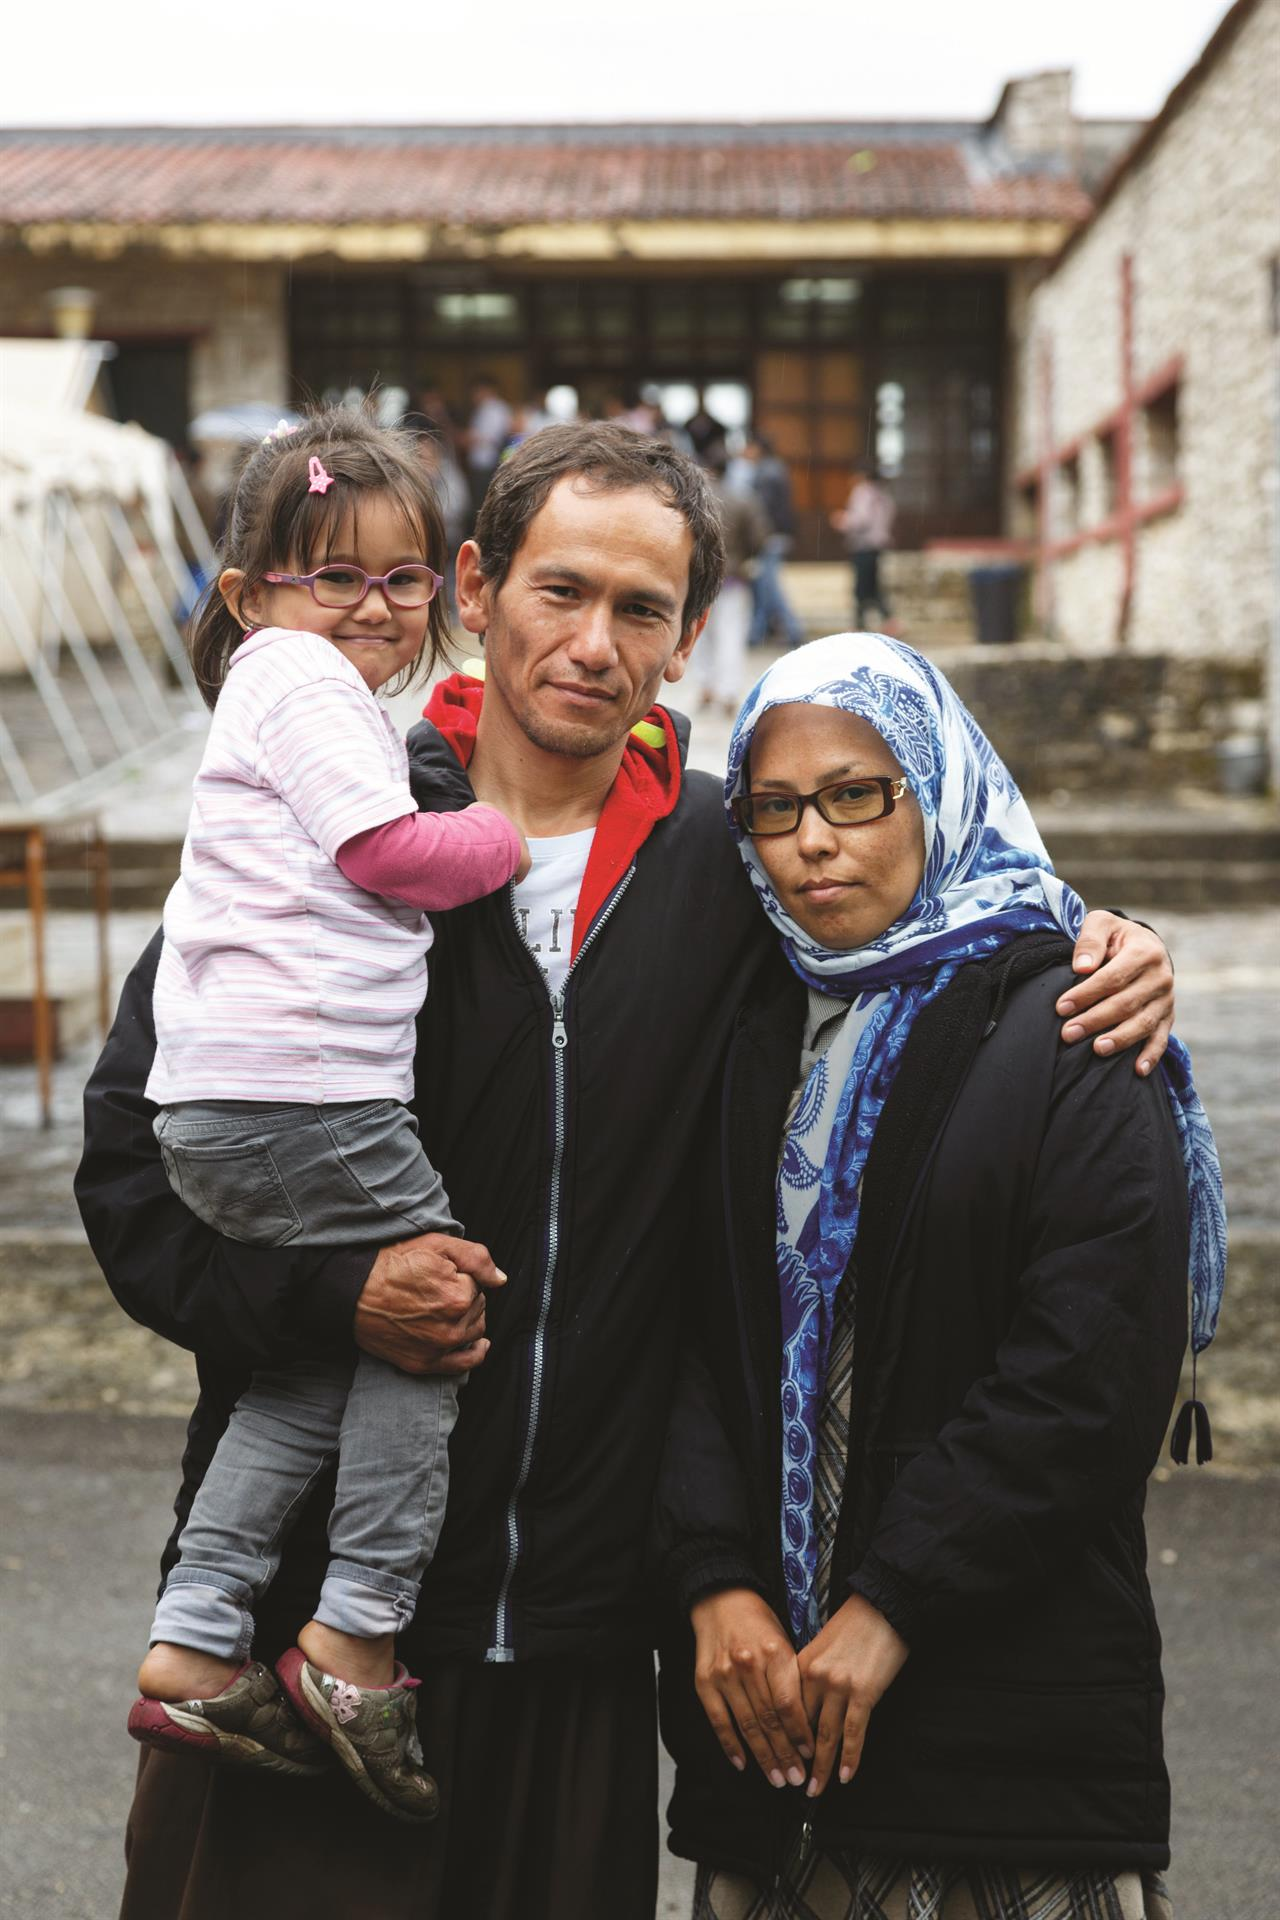 Nader 33 And Aziza 31 With Their Son, Afghans, Doliana Camp, Epirus Credit Aubrey Wade Oxfam